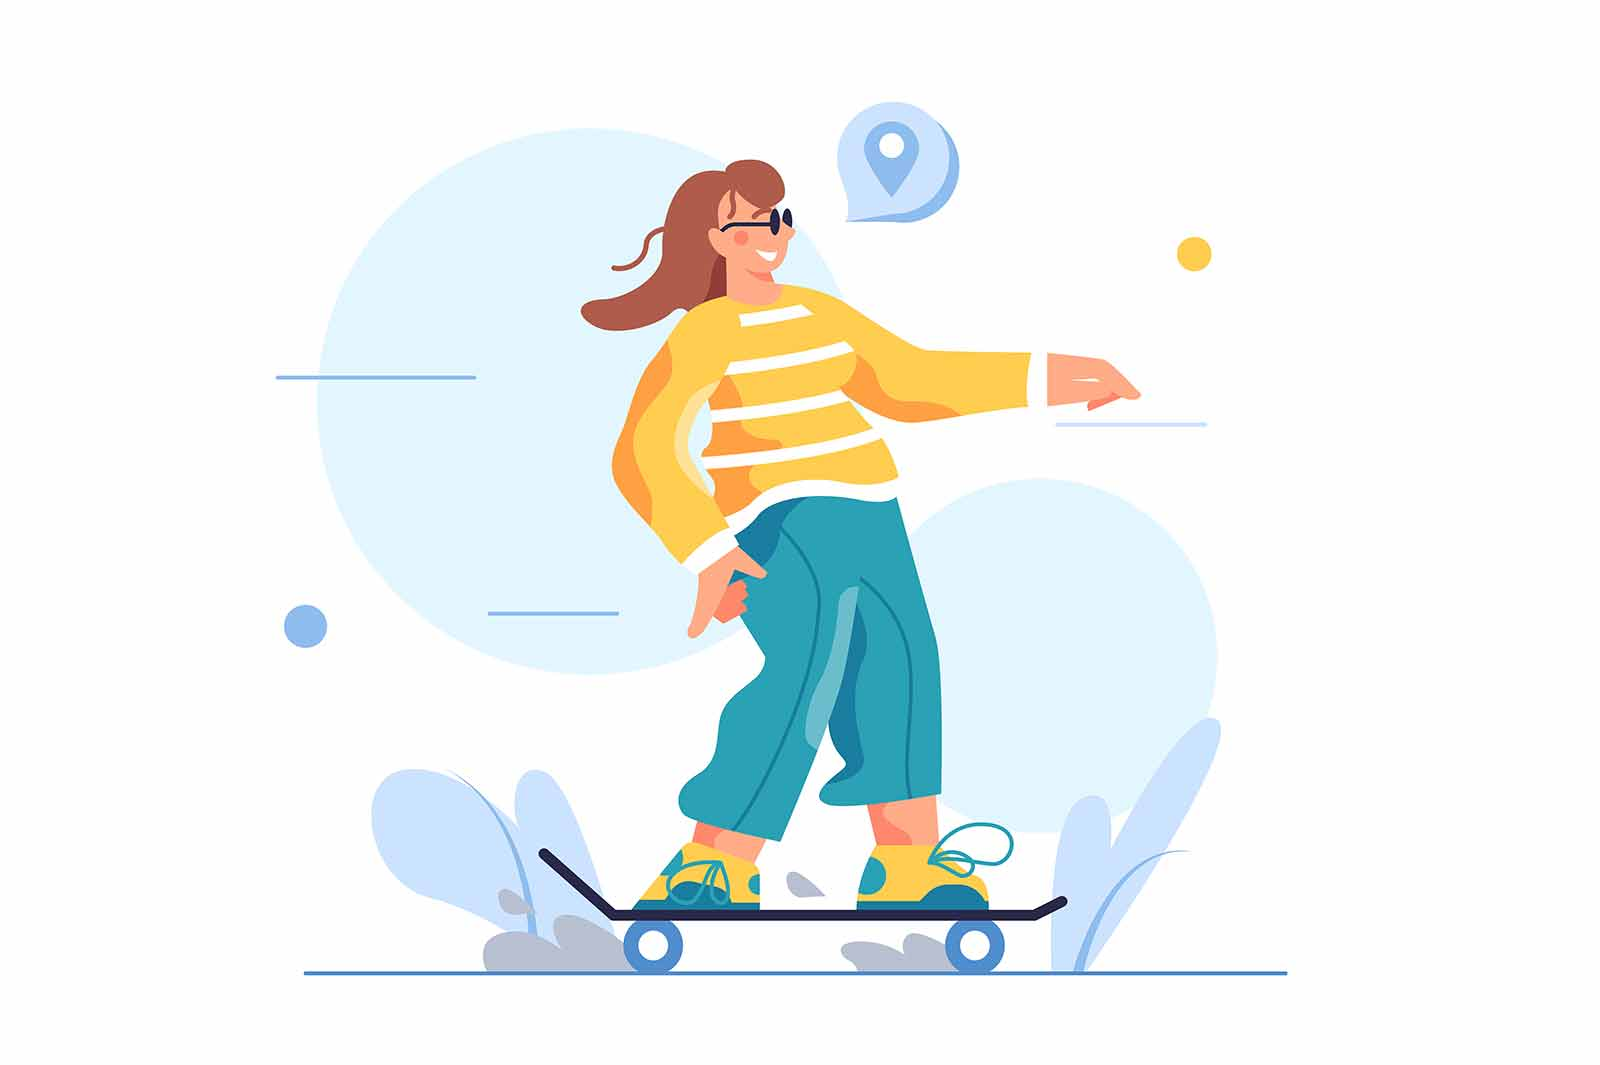 Girl rides a skateboard, wearing sunglasses, isolated on white background flat vector illustration.